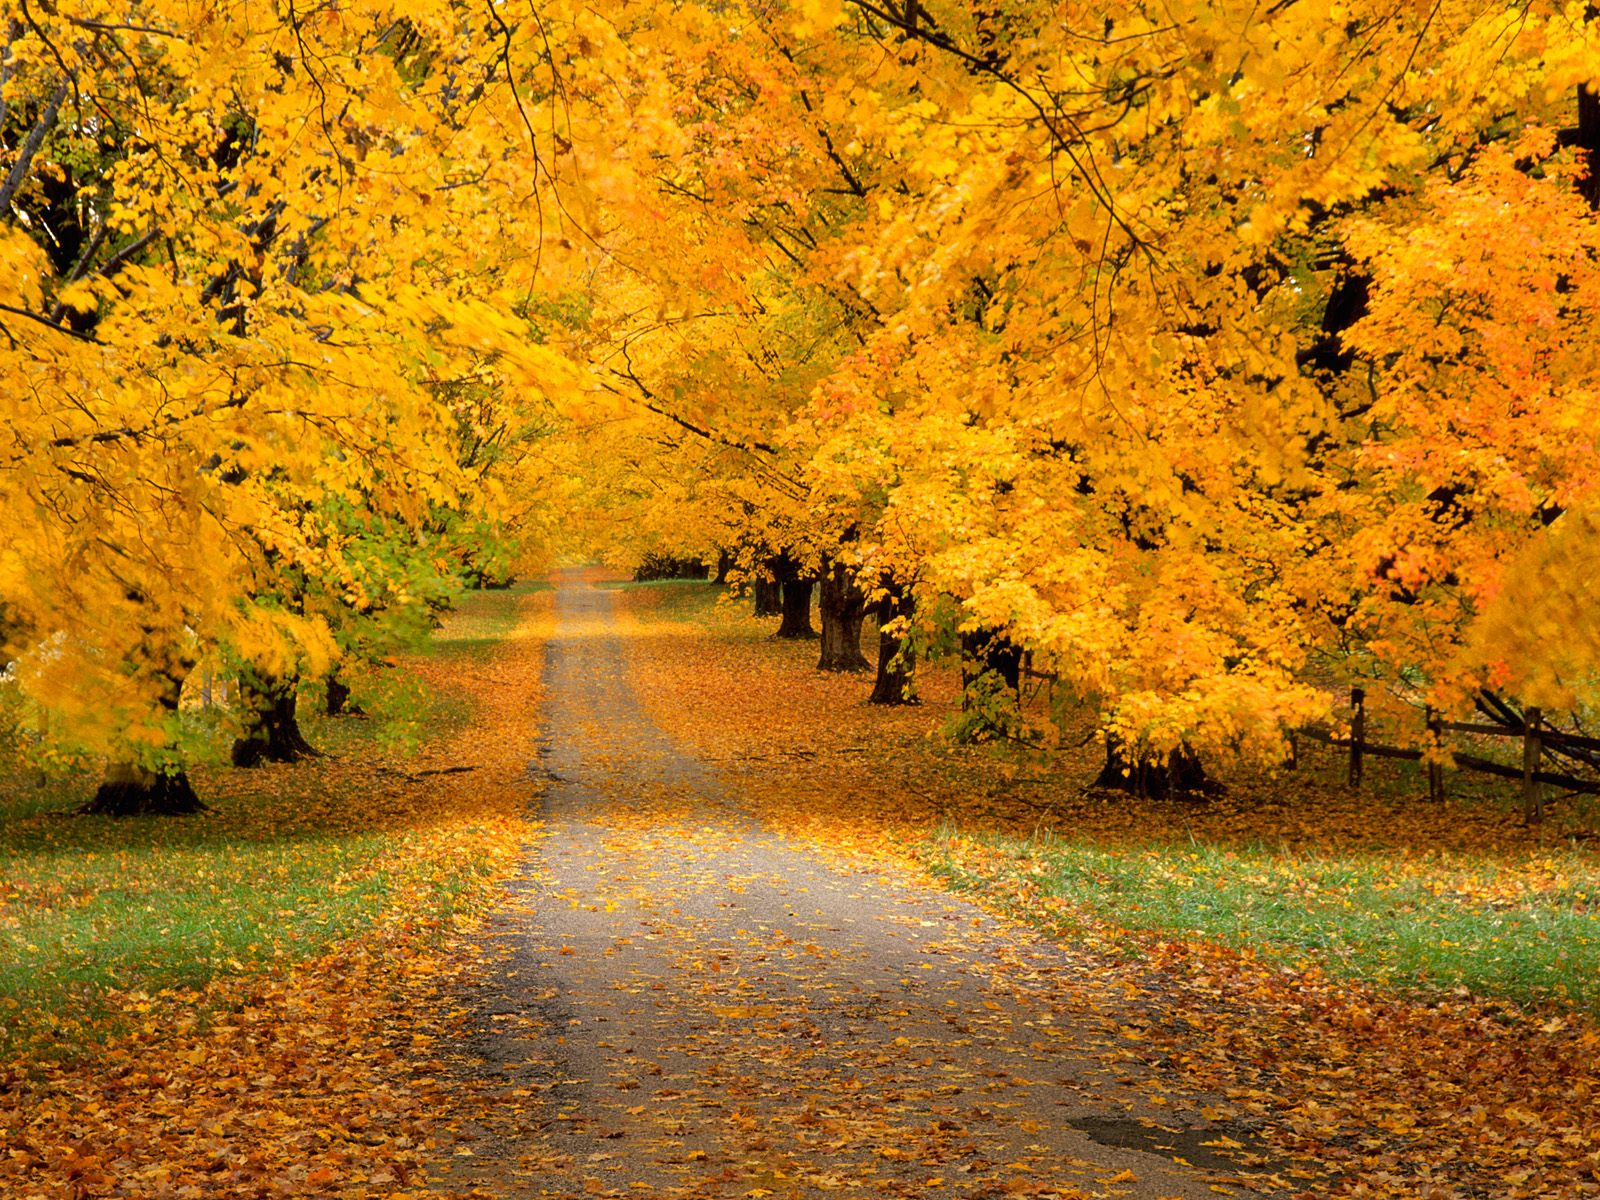 autumn wallpaper |Nature Wallpapers